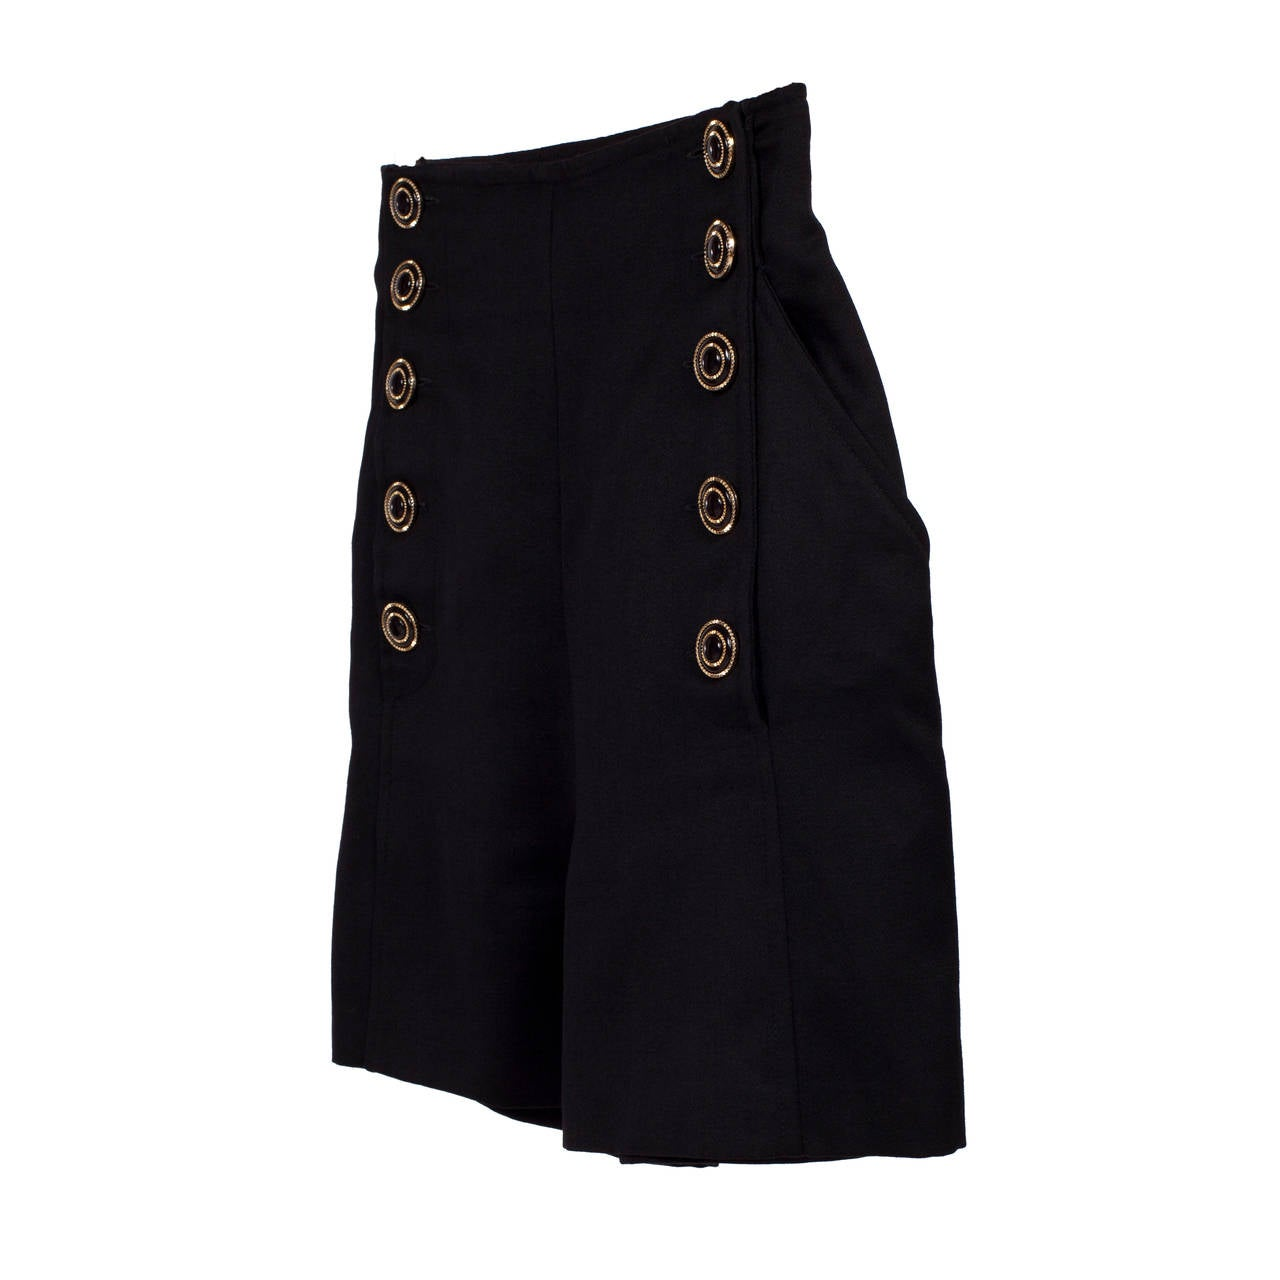 Gianni Versace / Versus High waisted shorts in black with buttons closure. Sz : 40 Italian  Material : Wool / Viscose